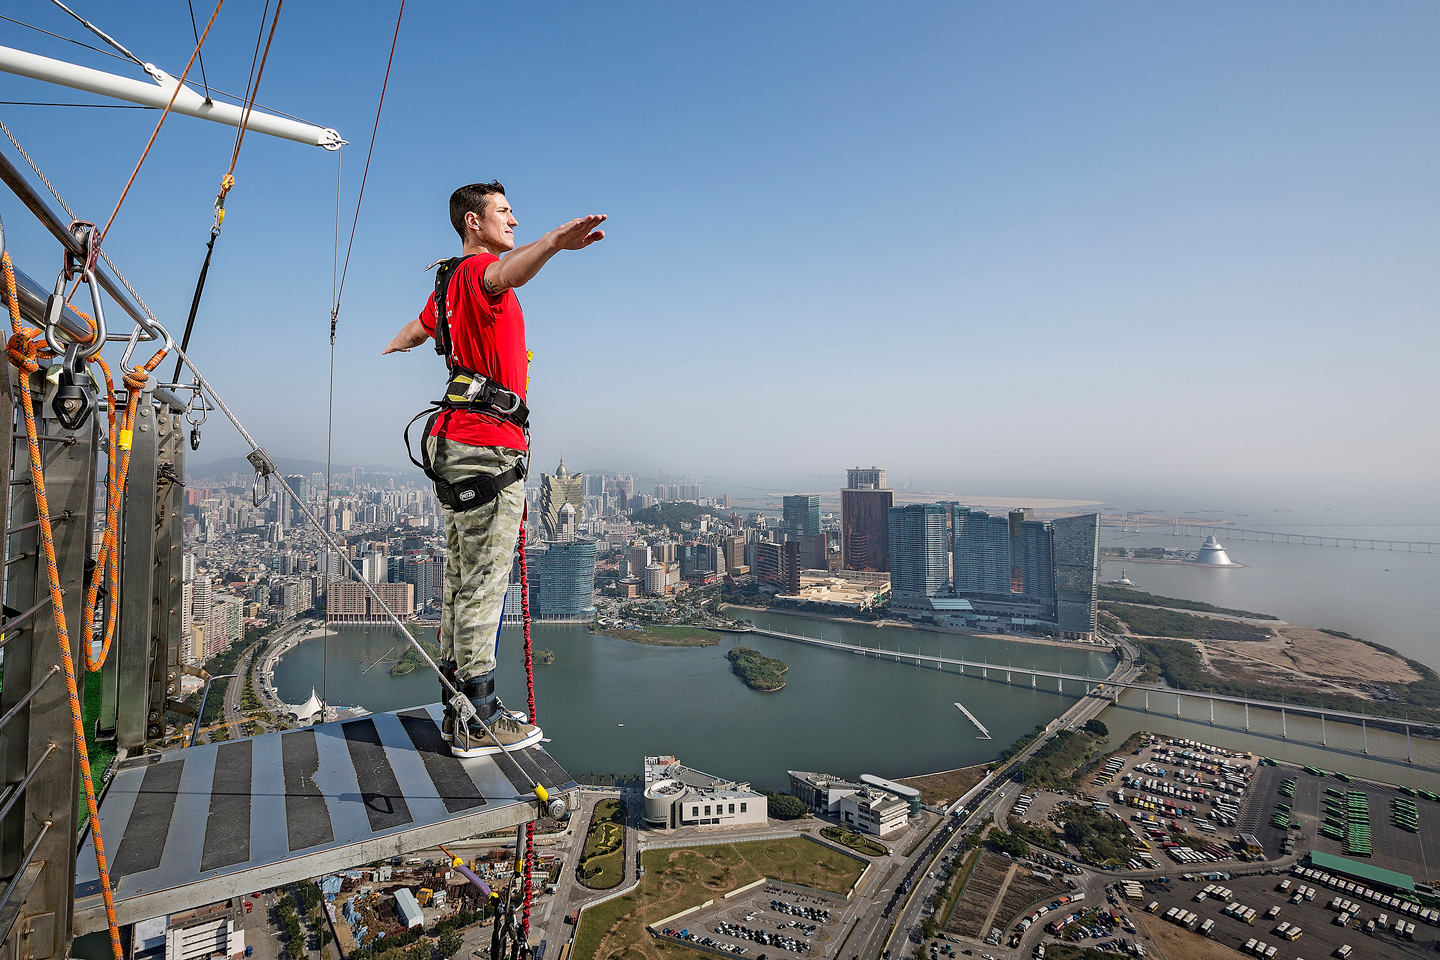 What NOT To Do When Bungee Jumping - Take the plunge 8 best places in the world to bungee jump